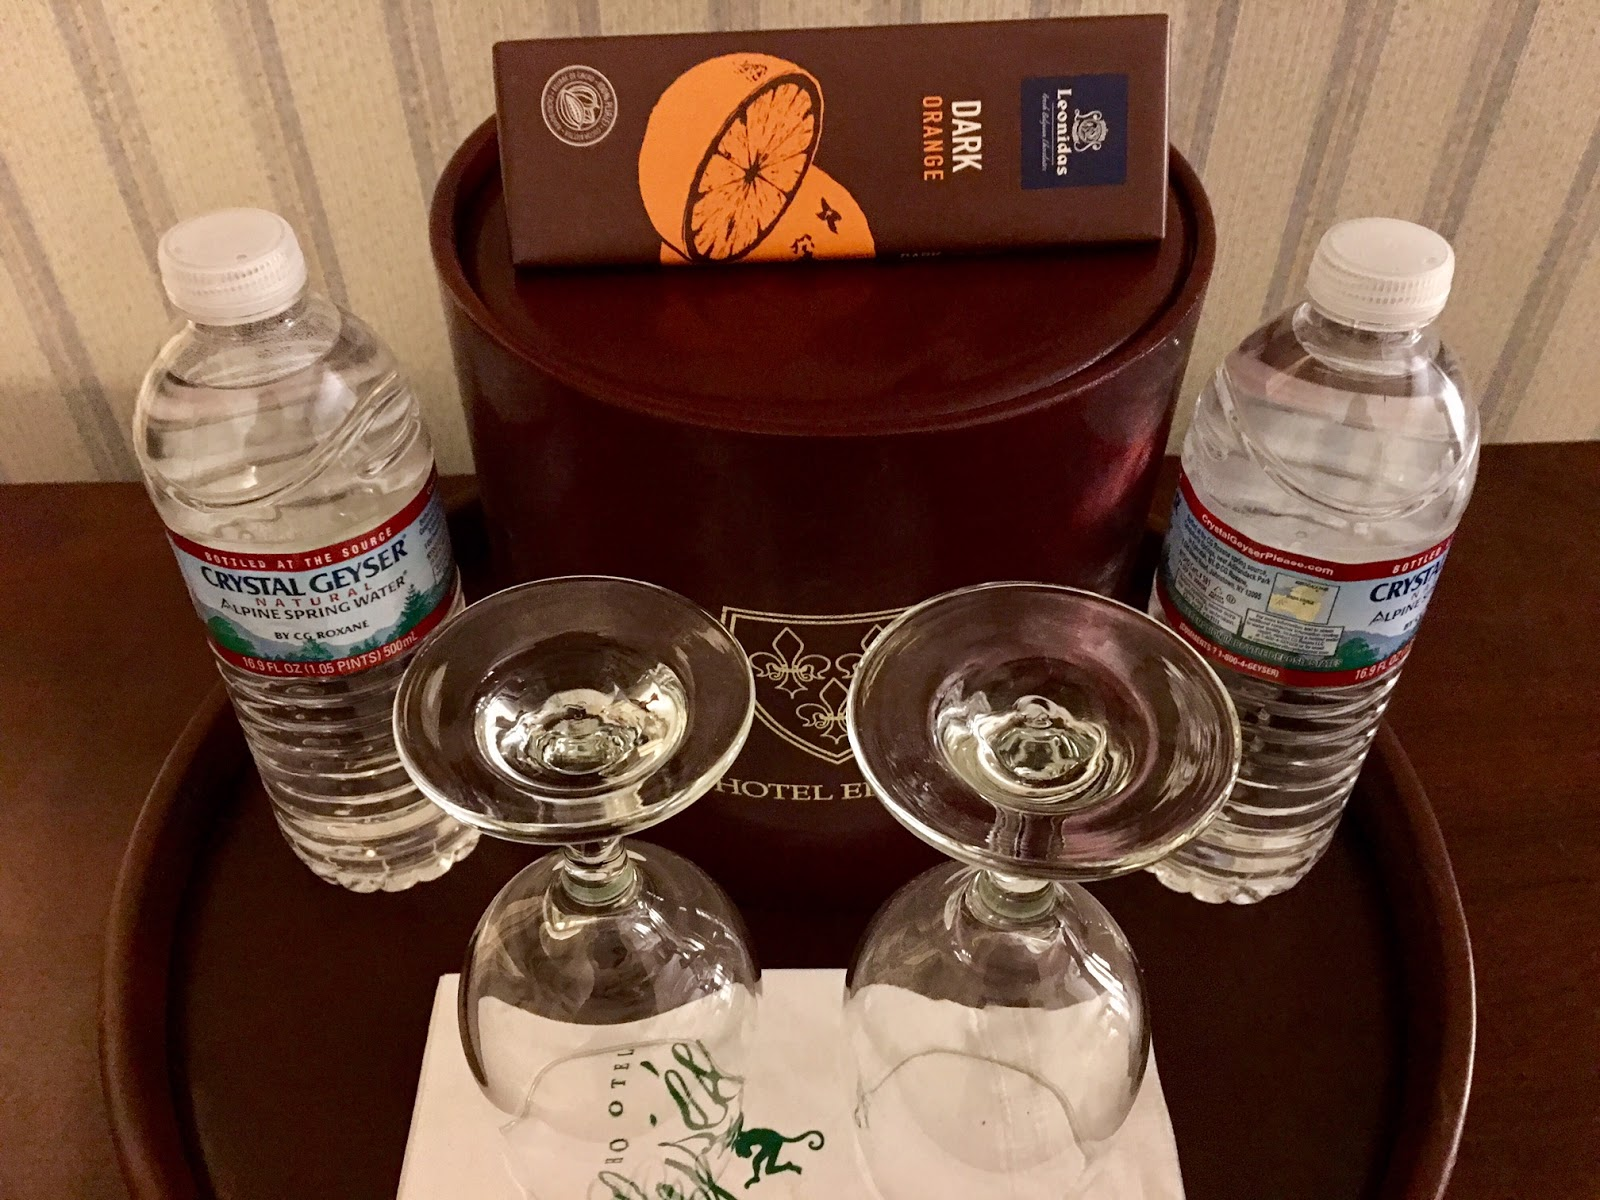 Hotel Elysee Amenities